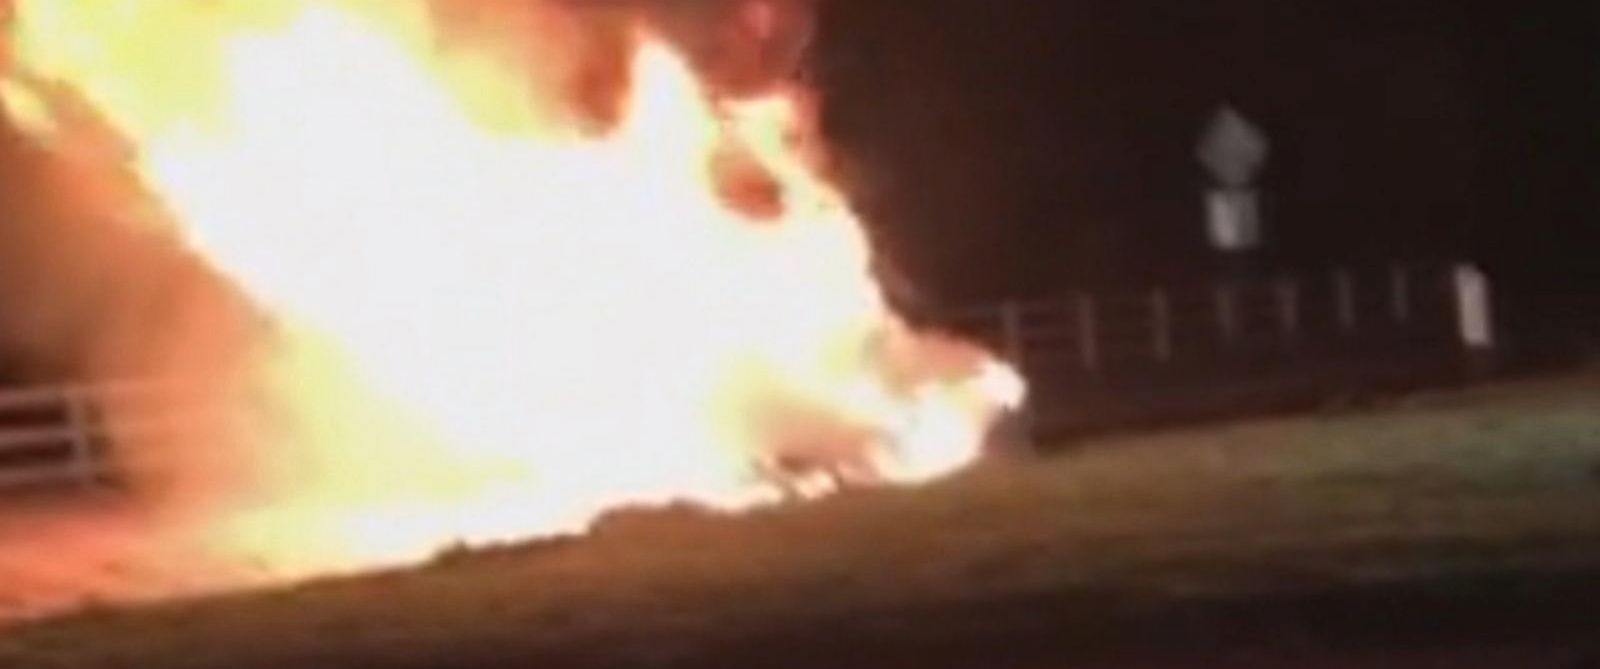 PHOTO: A man was rescued from this car, seconds before it went up in flames, by Oscar winner Jamie Foxx.